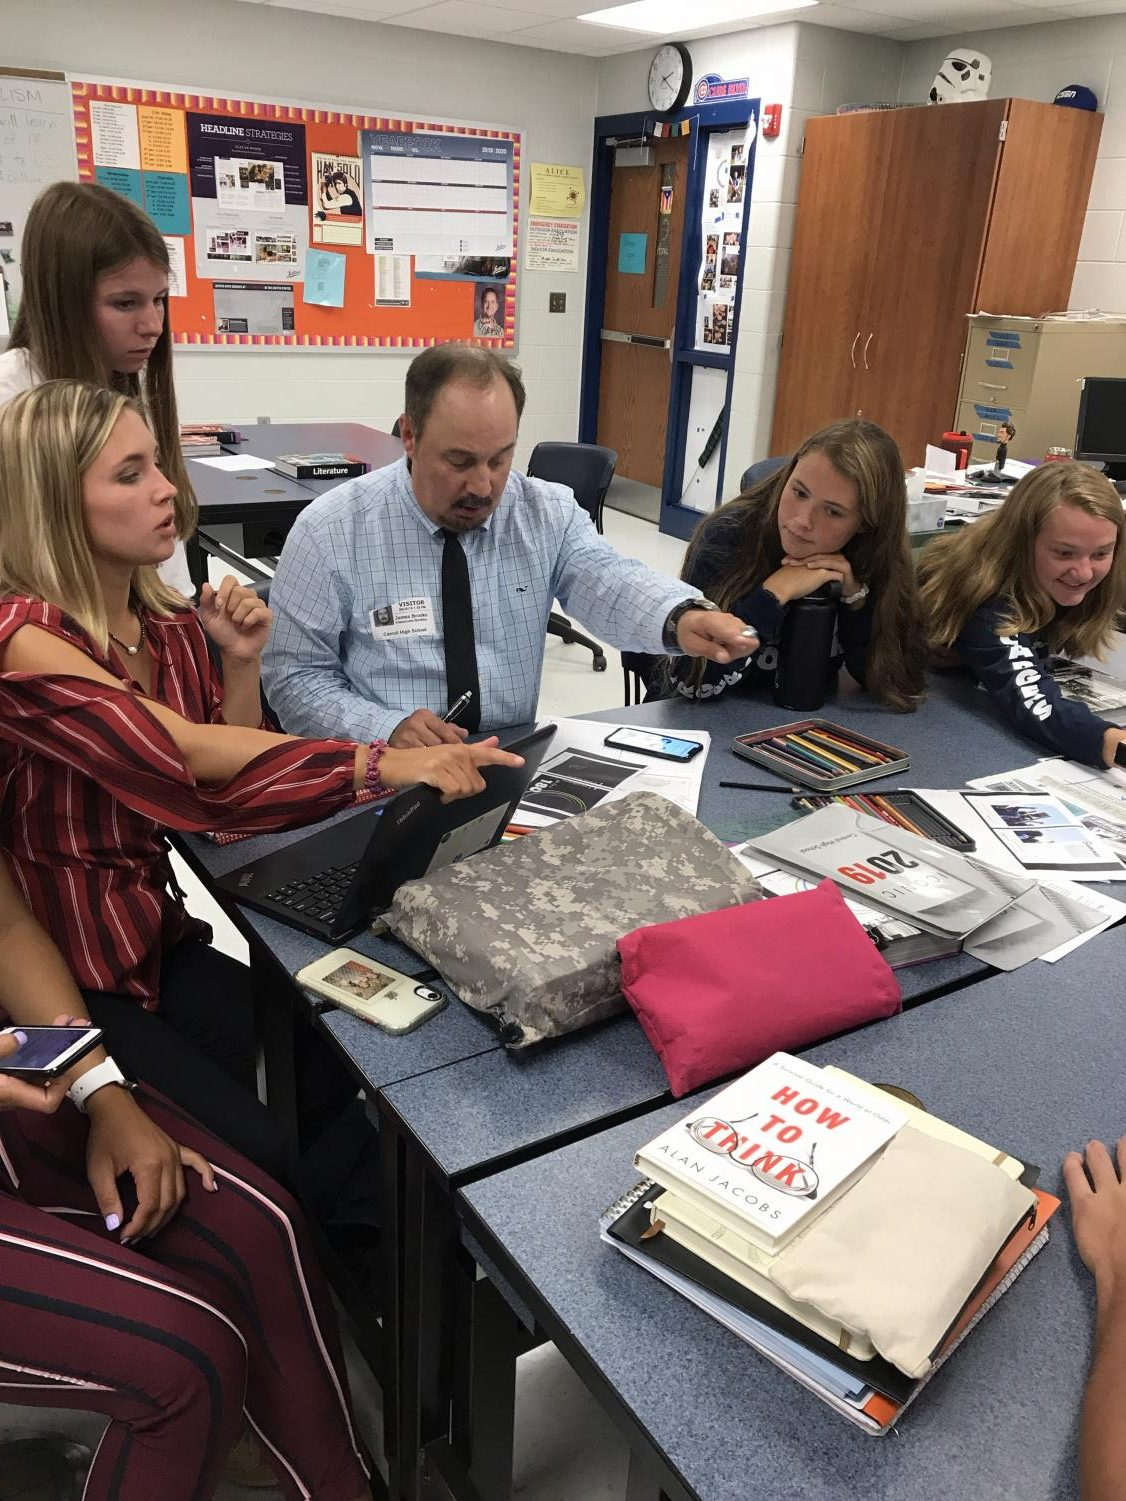 Josten's Designer Rick Brooks works with Editor-in-Chief Graham Ruselink, Student Life Editor Sydni Amick, Sports Editor Liz Knorr and Clubs Editor Kelsi Hoot on the cover of the 2020 Cavalier yearbook on August 26, 2019. Mr. Brooks comes to Carroll High School to help bring the editors' vision to life every year. Photo by VM Smith.